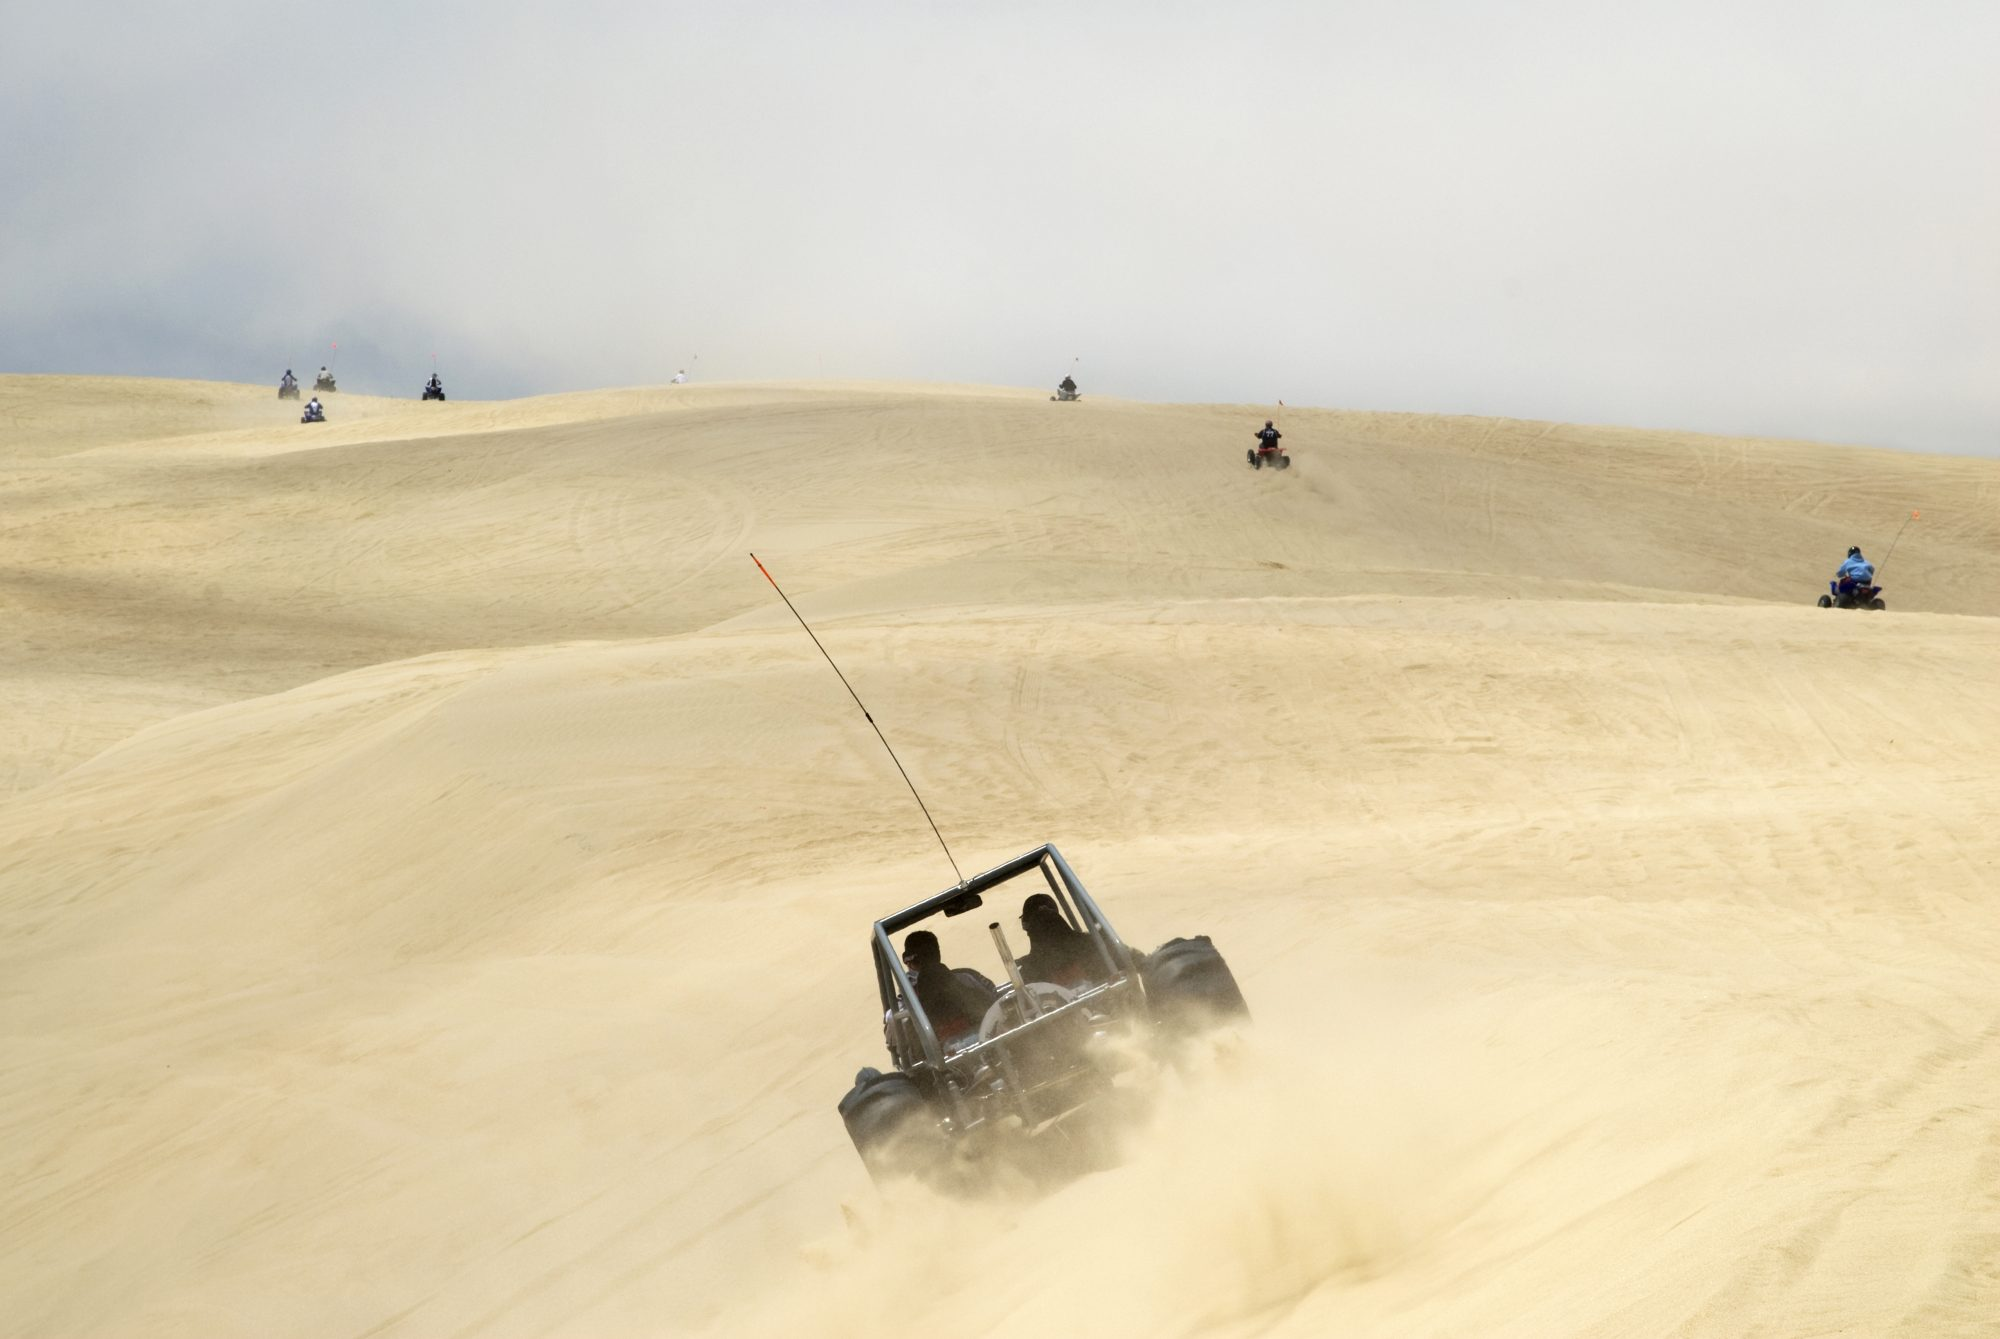 It may come as a surprise that California — known for its car and beach culture — has but one beach where it's legal to drive. Officially the 'Oceano Dunes State Vehicular Recreation Area,' this 5.5-mile stretch of coast near Pismo Beach is also a rarity in that you can drive on the towering sand dunes behind the beach as well, an activity that's usually strictly forbidden elsewhere. Both cars and dune buggies can be driven here (four-wheel drive recommended), and camping and horseback riding also are permitted.